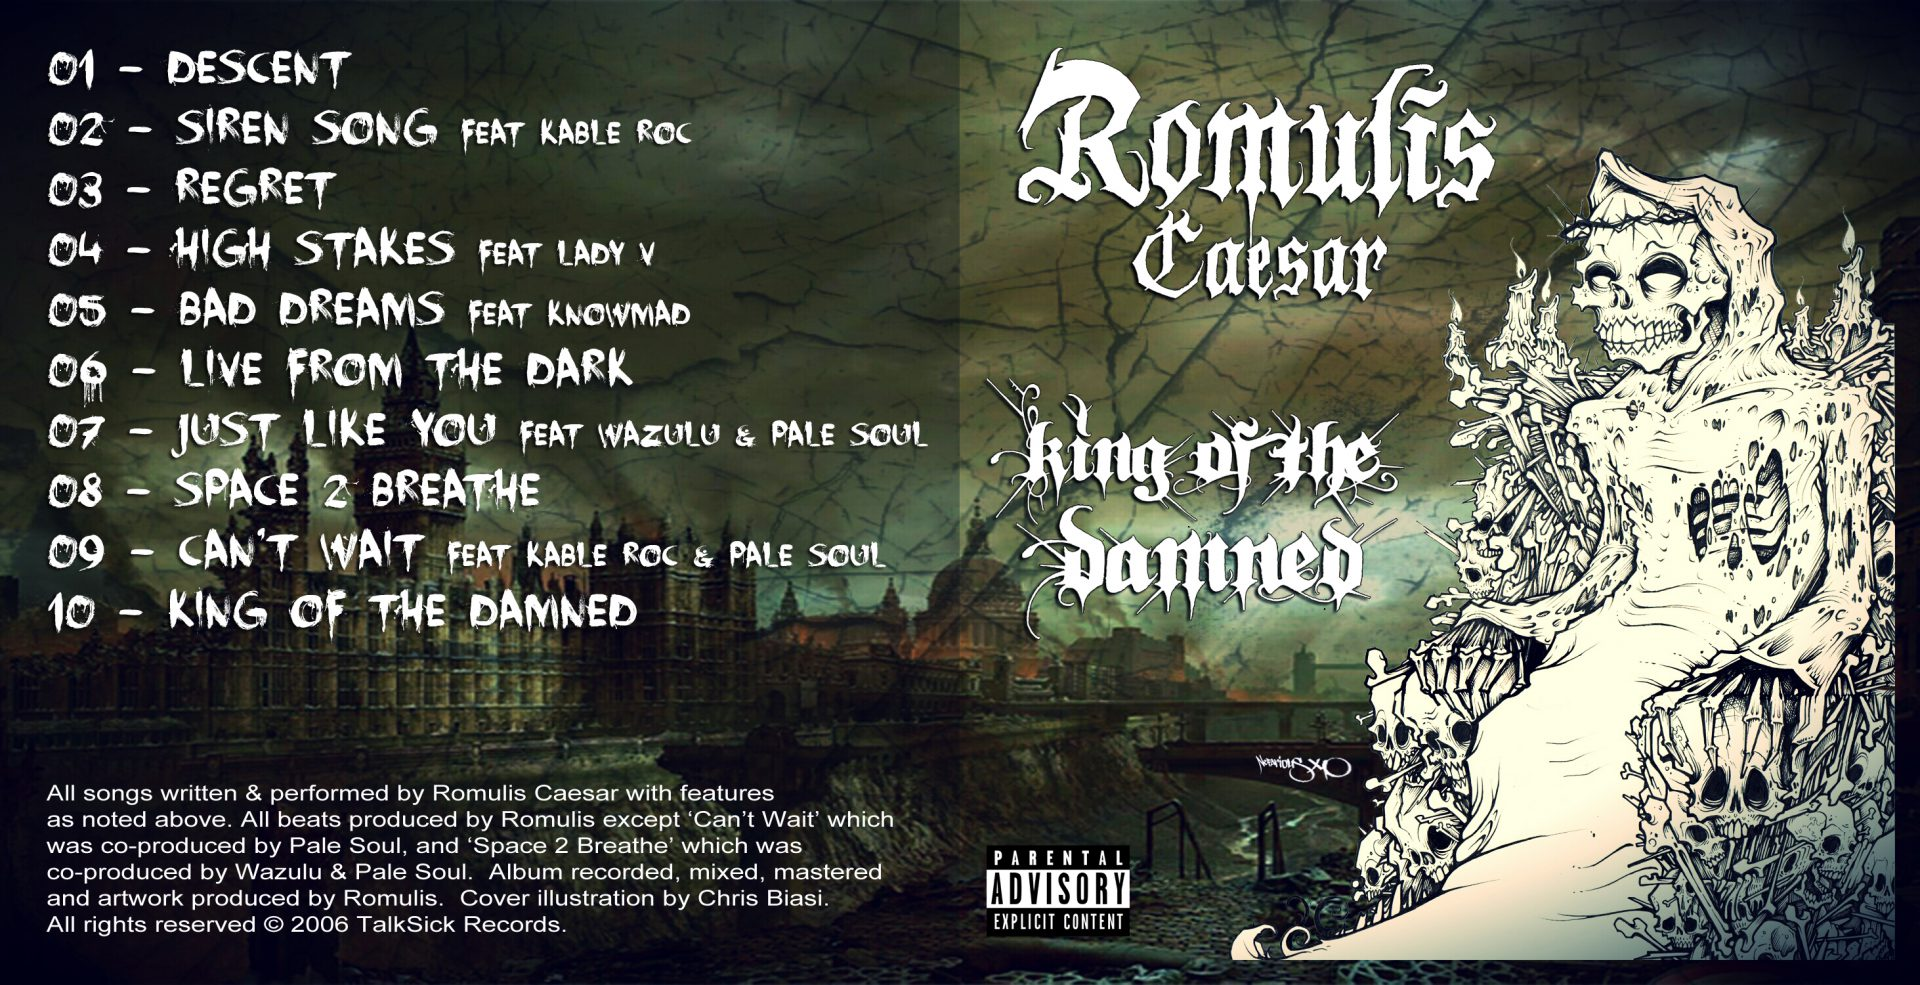 Romulis Caesar - King of the Damned Outside Cover Art